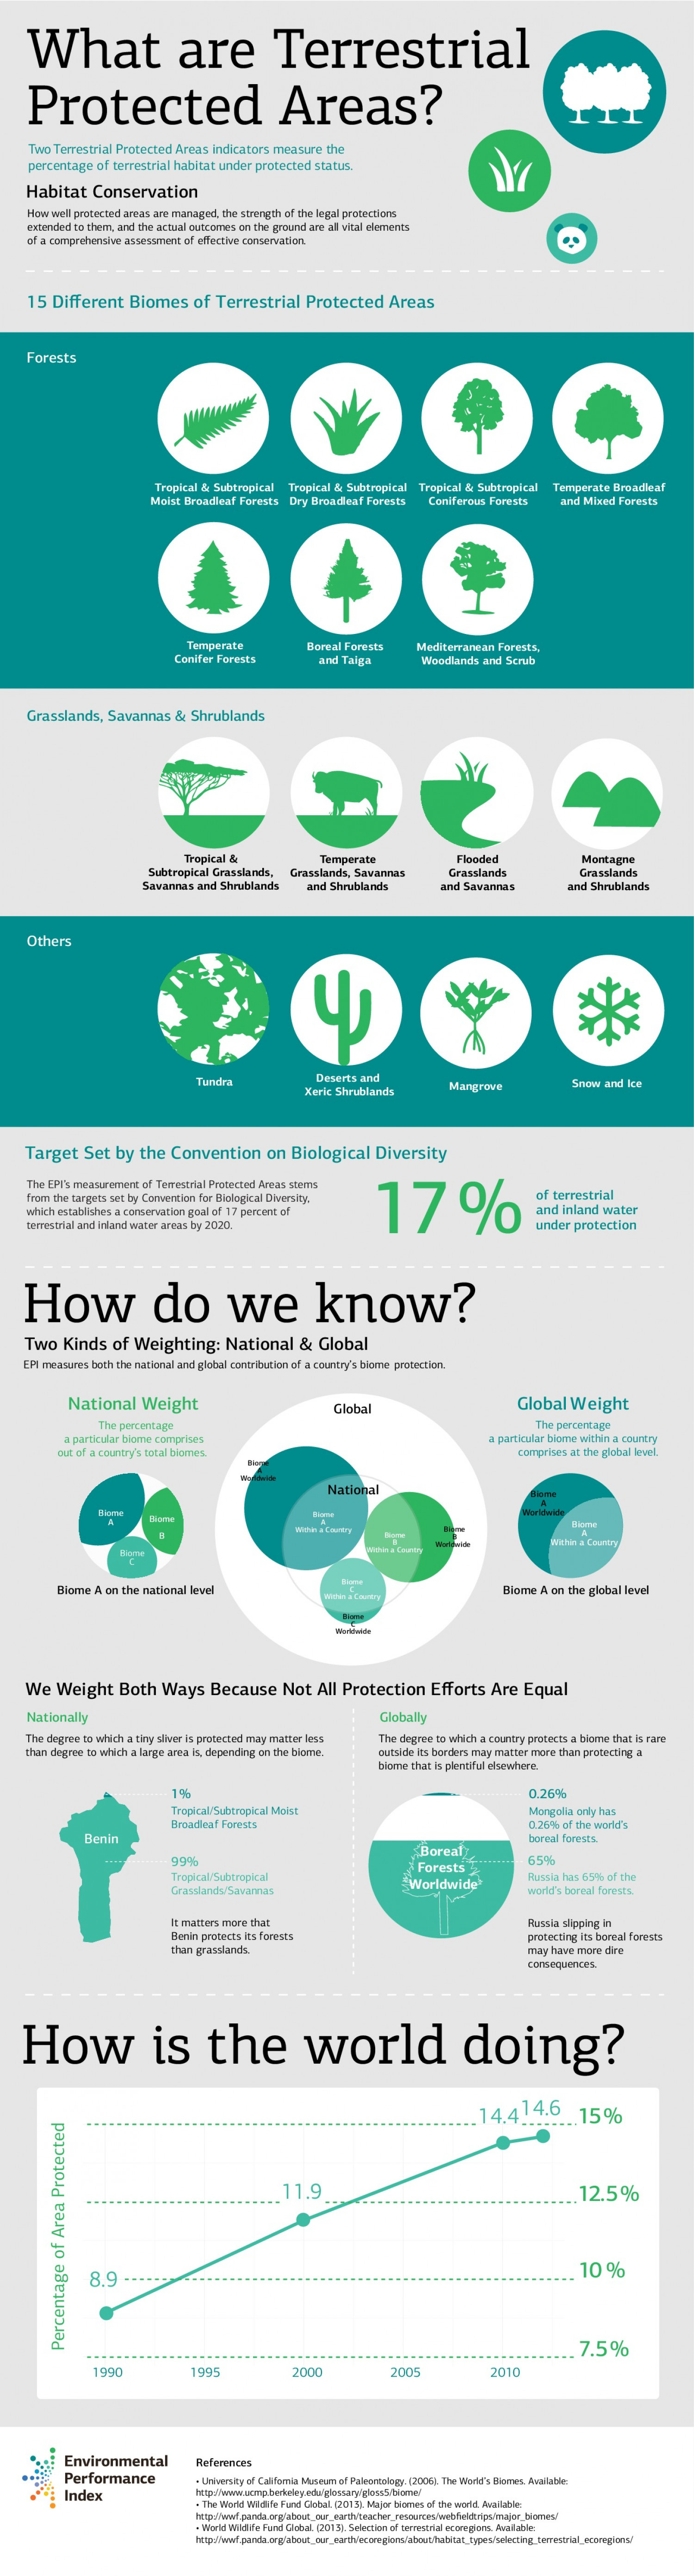 What Are Terrestrial Protected Areas Indicators? Infographic